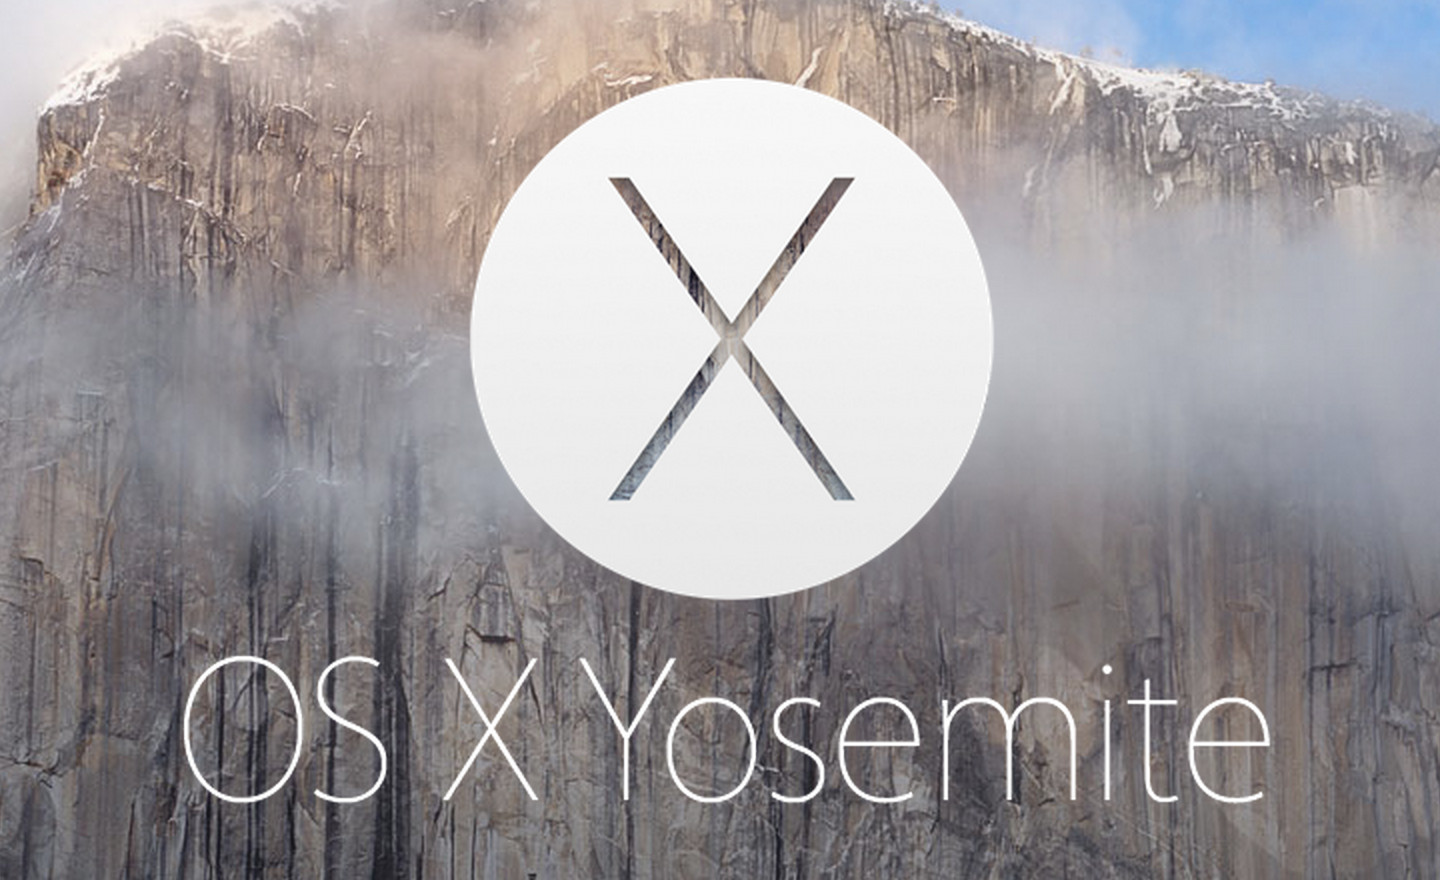 yosemite apple nederland stappenplan